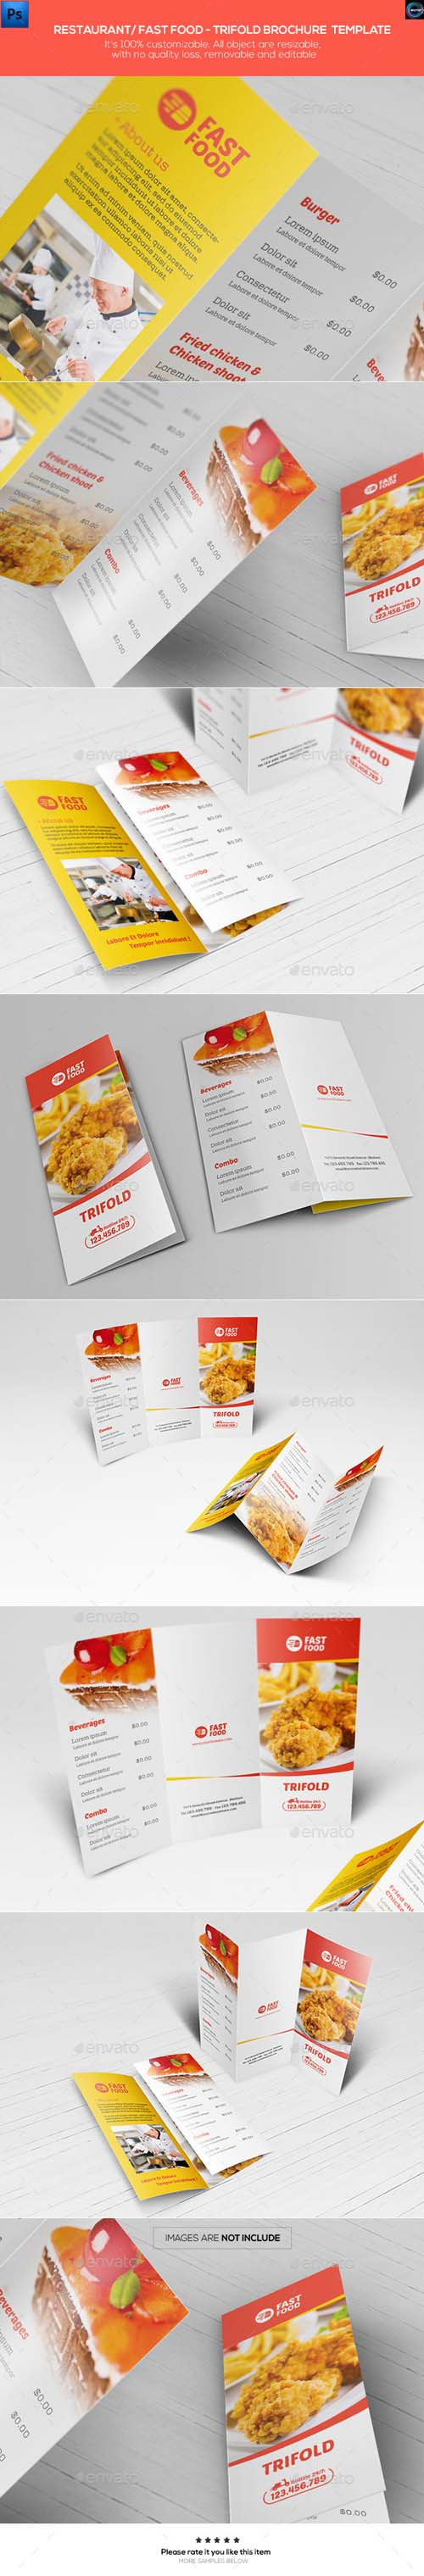 Restaurant/ Fast Food - Trifold Brochure Template 12348507